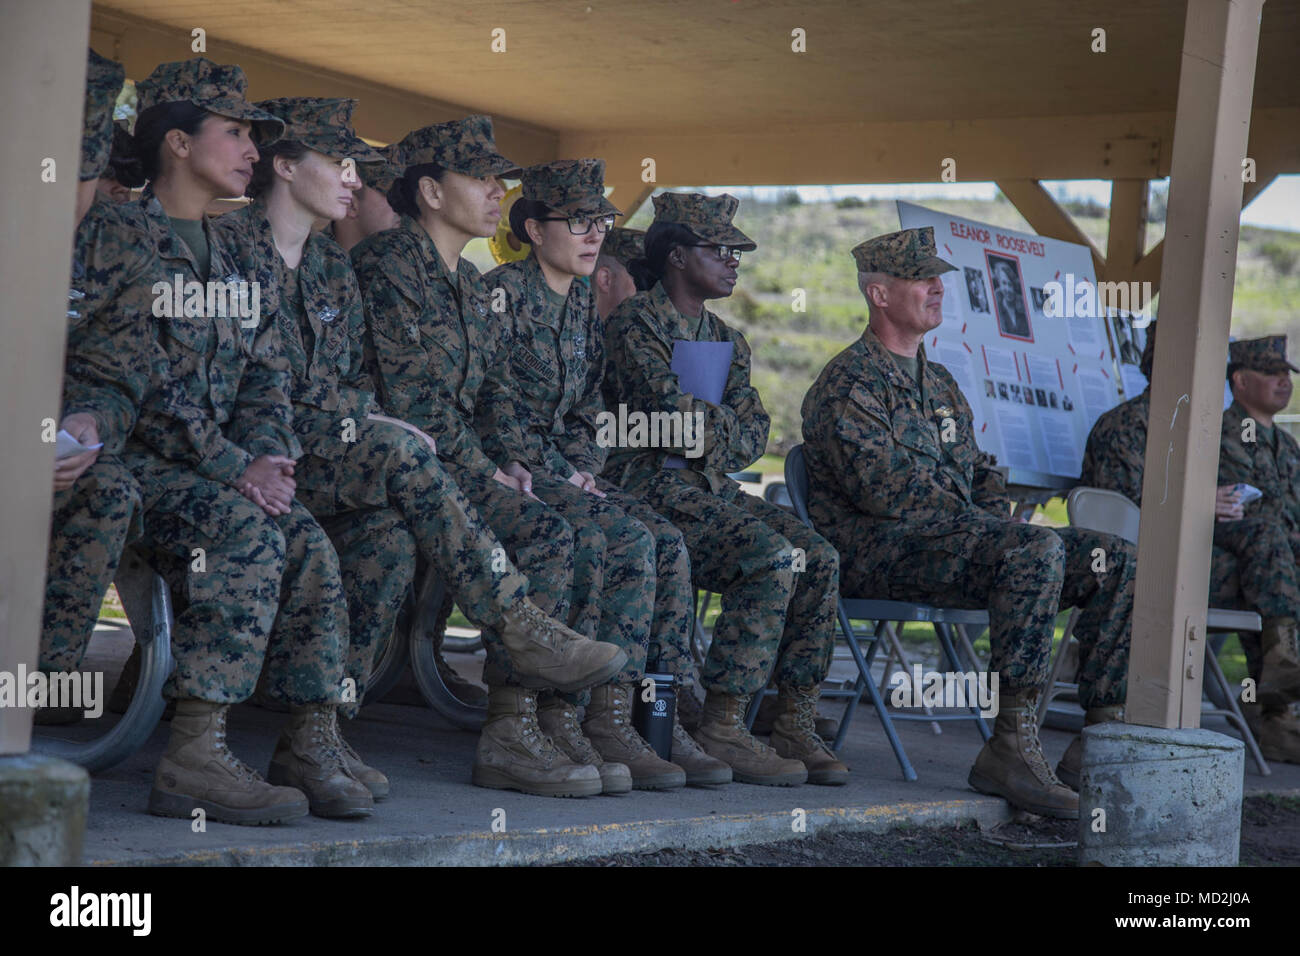 U.S. Sailors with 1st Medical Battalion, 1st Marine Logistics Group, listen to retired Marine Maj. Kathleen Ables about her experiences in the military as a woman during the Womens History Month Celebration event at Camp Pendleton, Calif., March 27, 2018. During the speech, she spoke about the challenges faced by woman in the military during the mid 1900's. - Stock Image